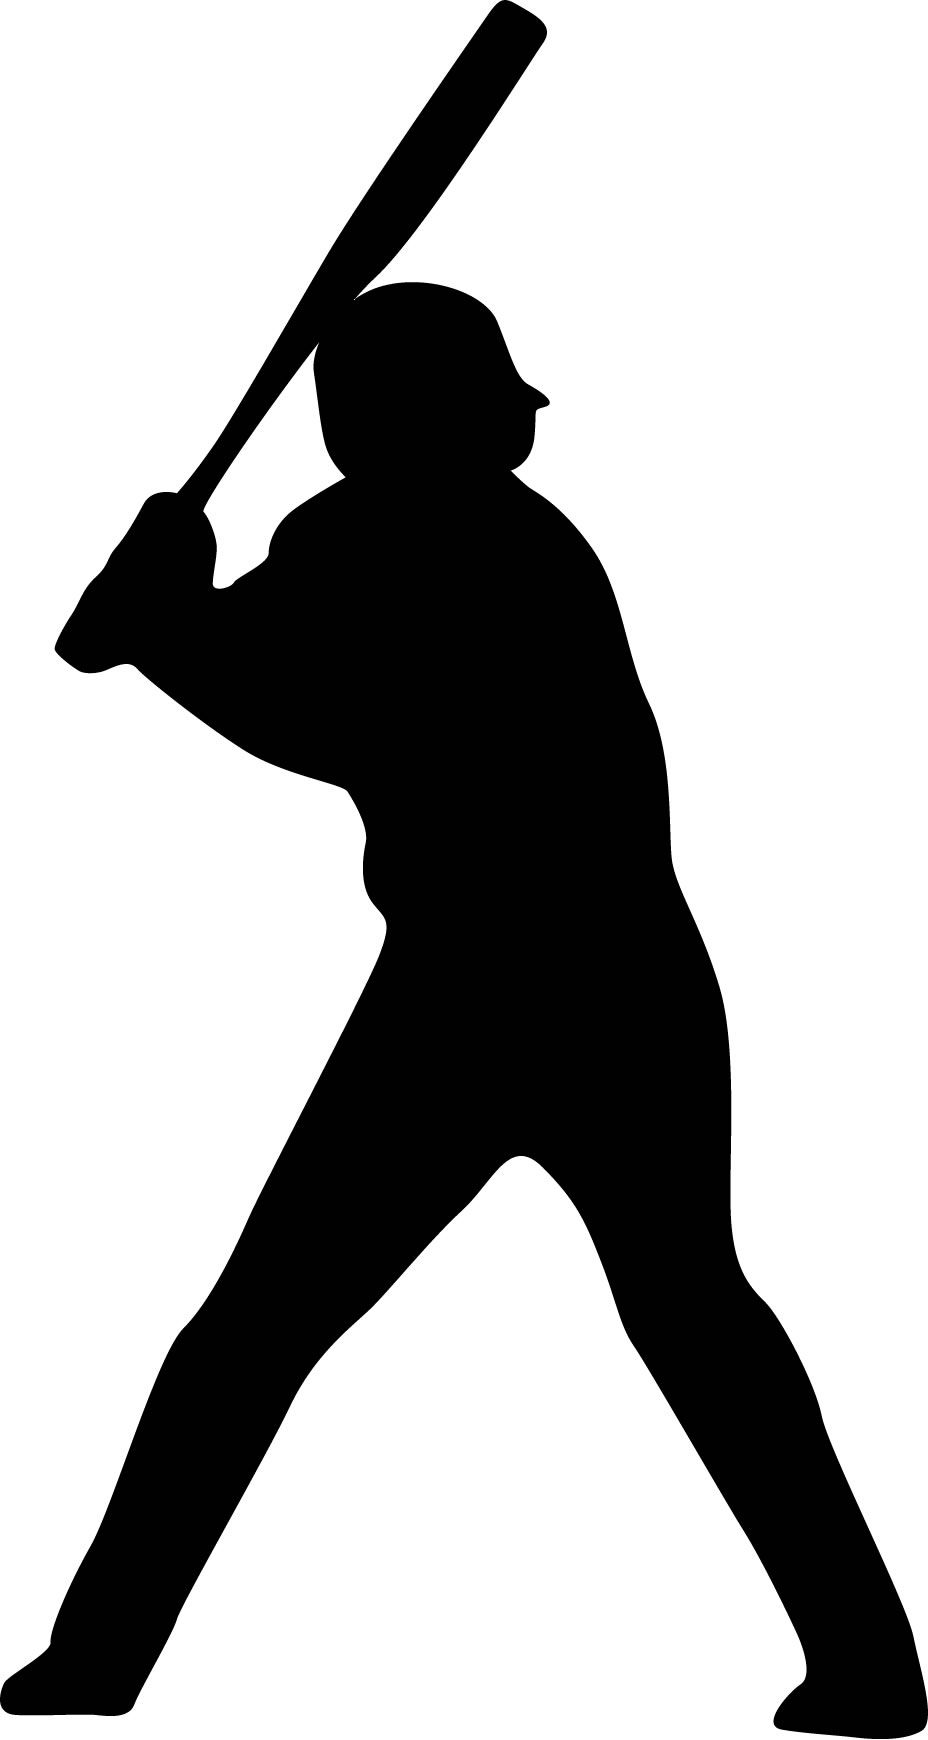 928x1740 Baseball Player Batting Stance Righty Silhouette Custom Wall